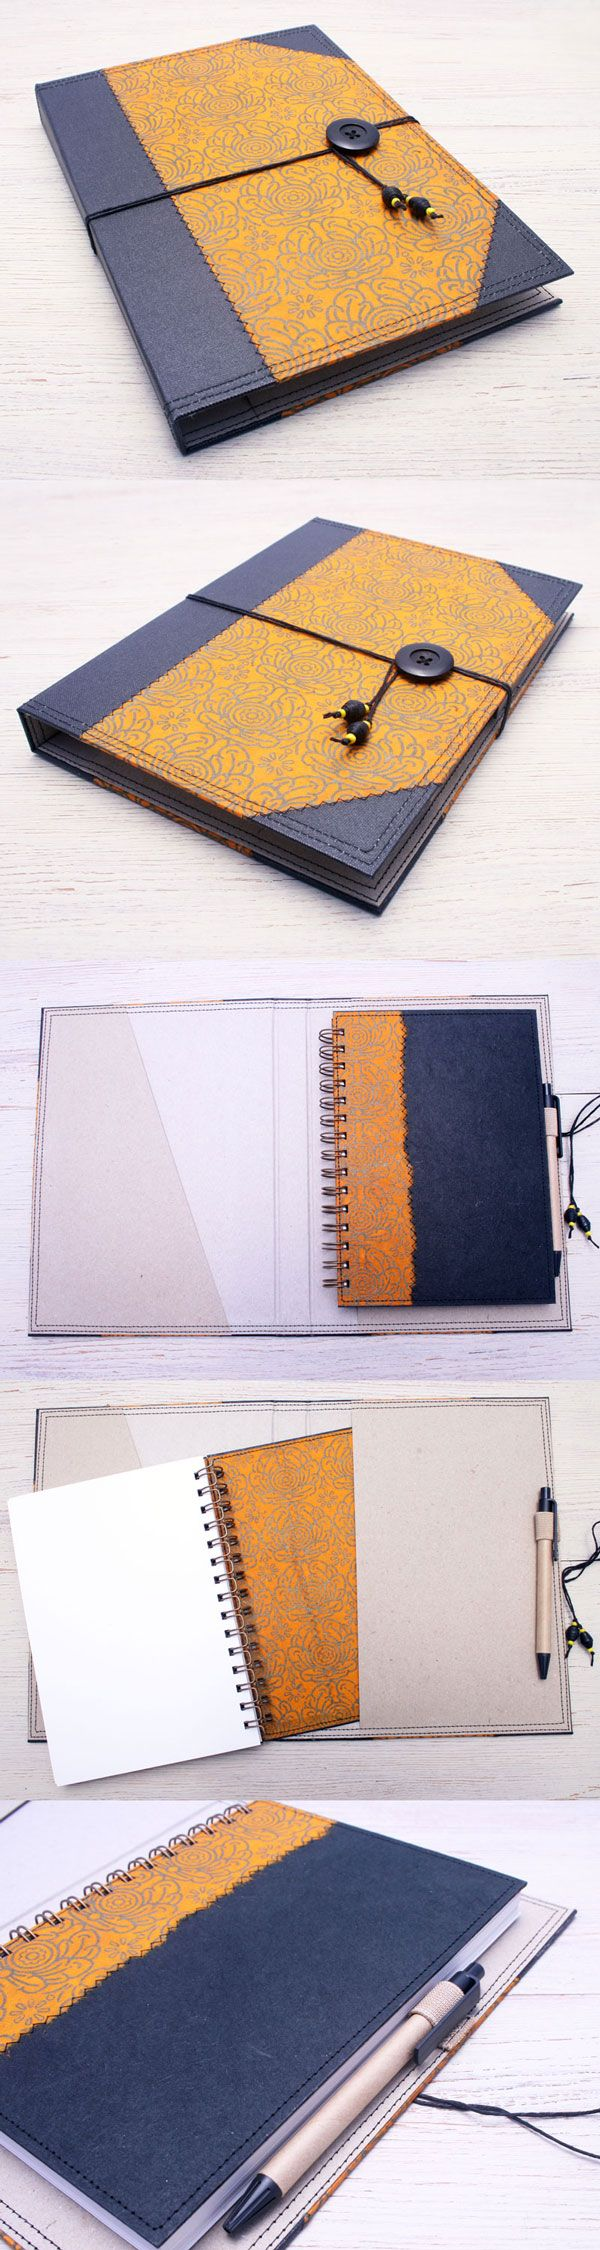 Yellow Lotus Notebook Cover Folder with notebook and pen included. Handcrafted from eco friendly materials by Little Deer Studio